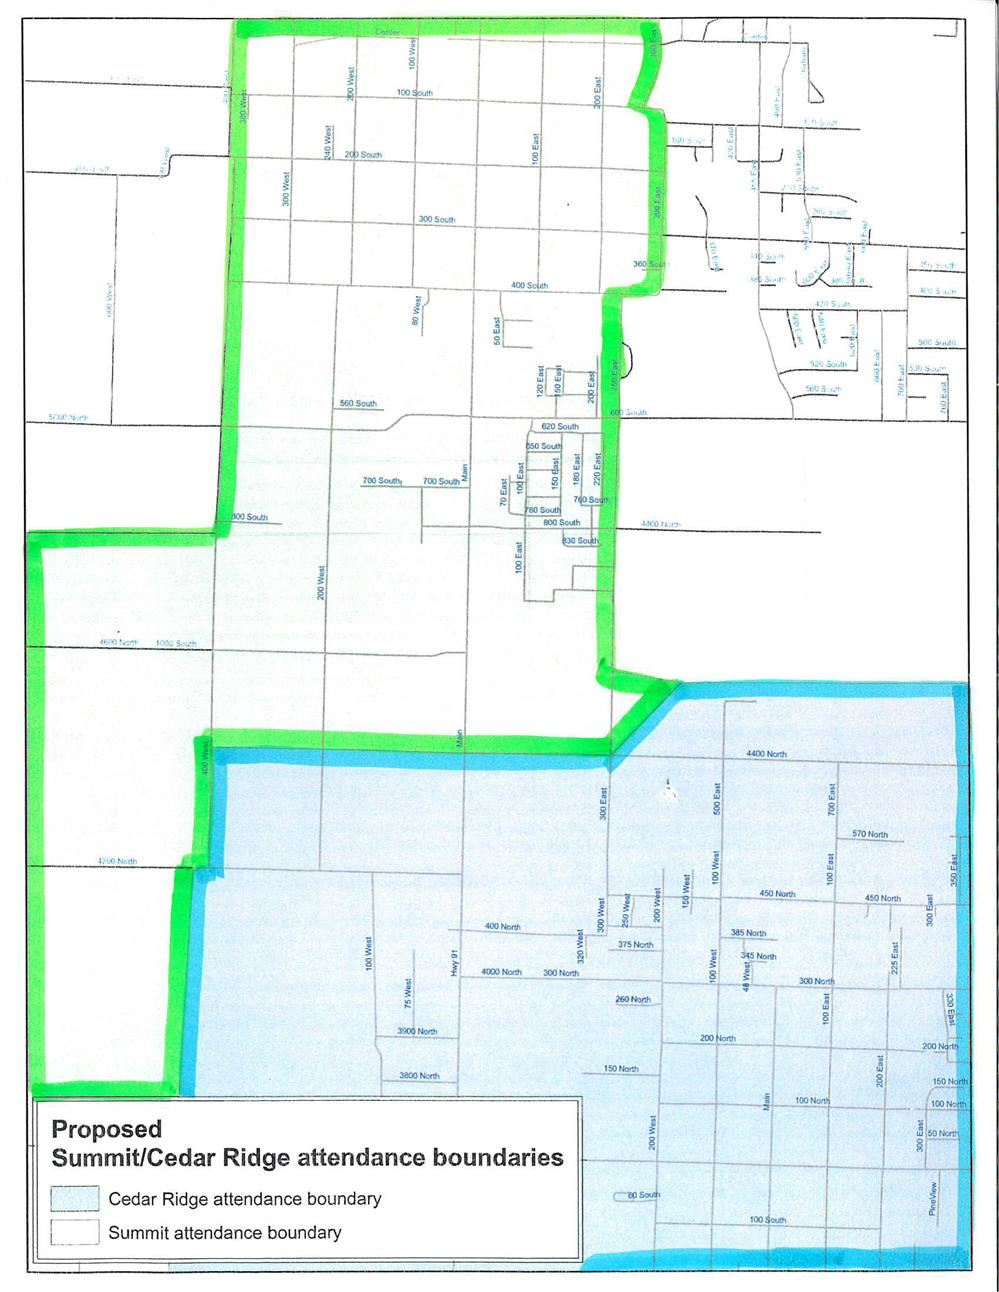 Proposed Elementary Boundary Changes for Summit and Cedar Ridge Elementary Schools